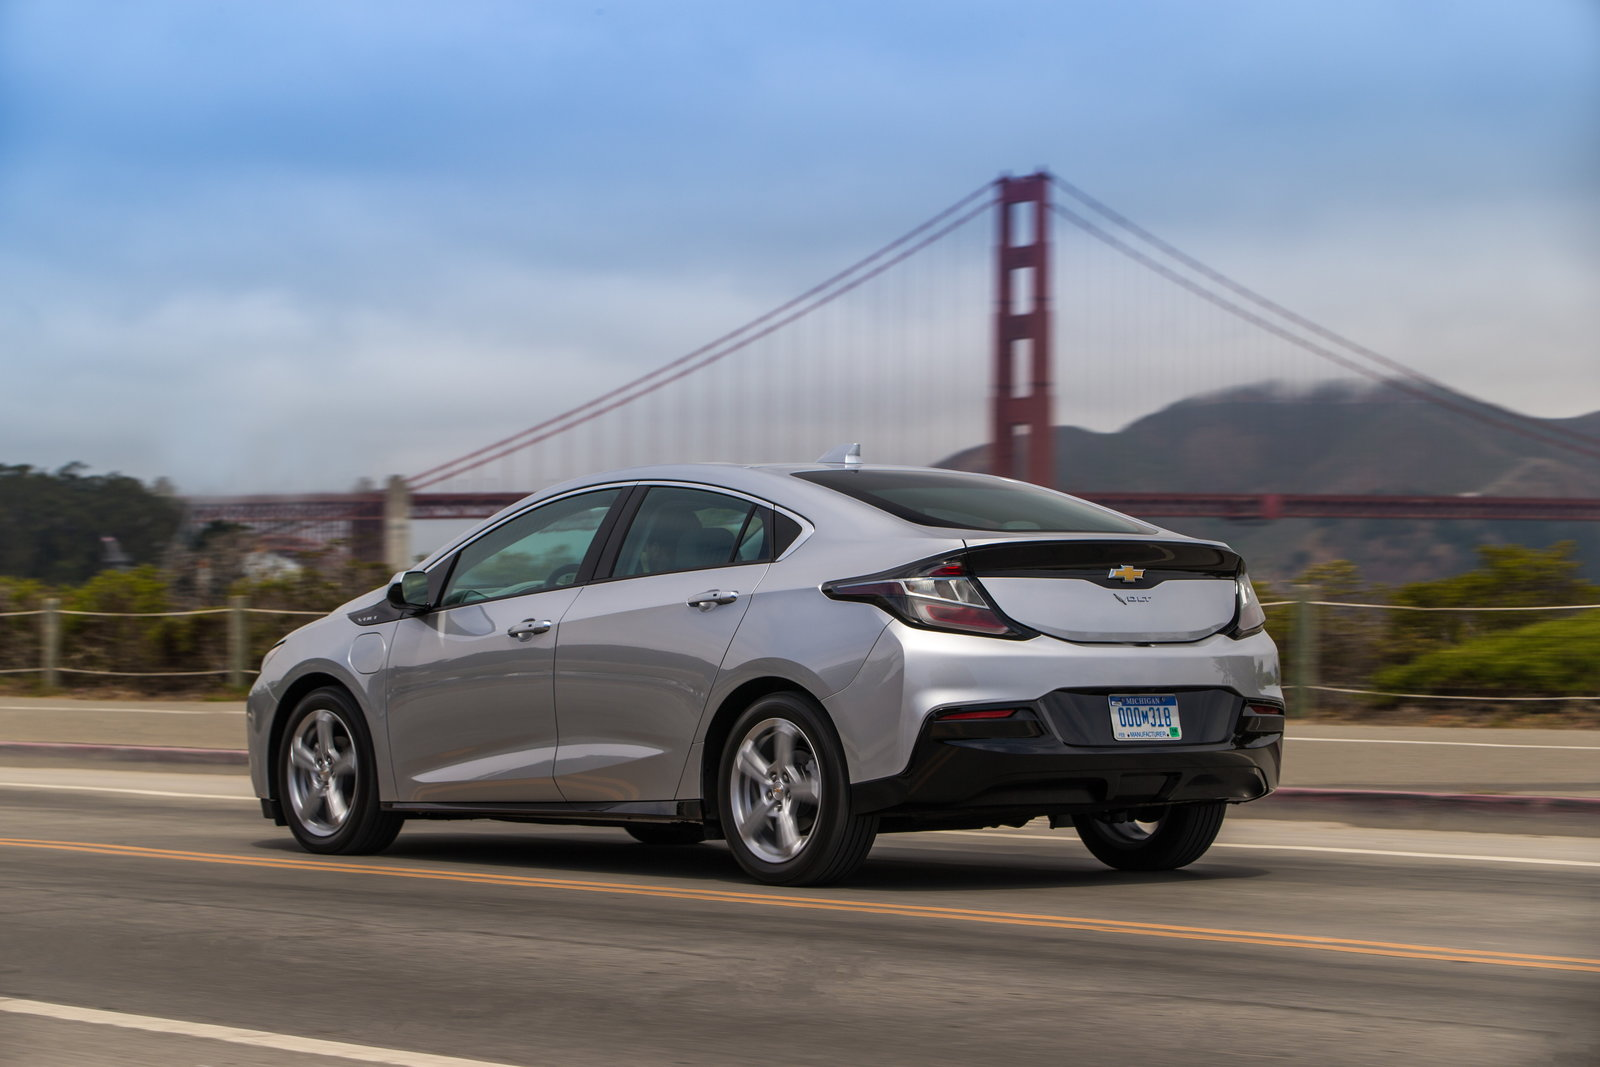 2019 Chevrolet Volt Charging Time Reduced Carsdirect Chevy Electric